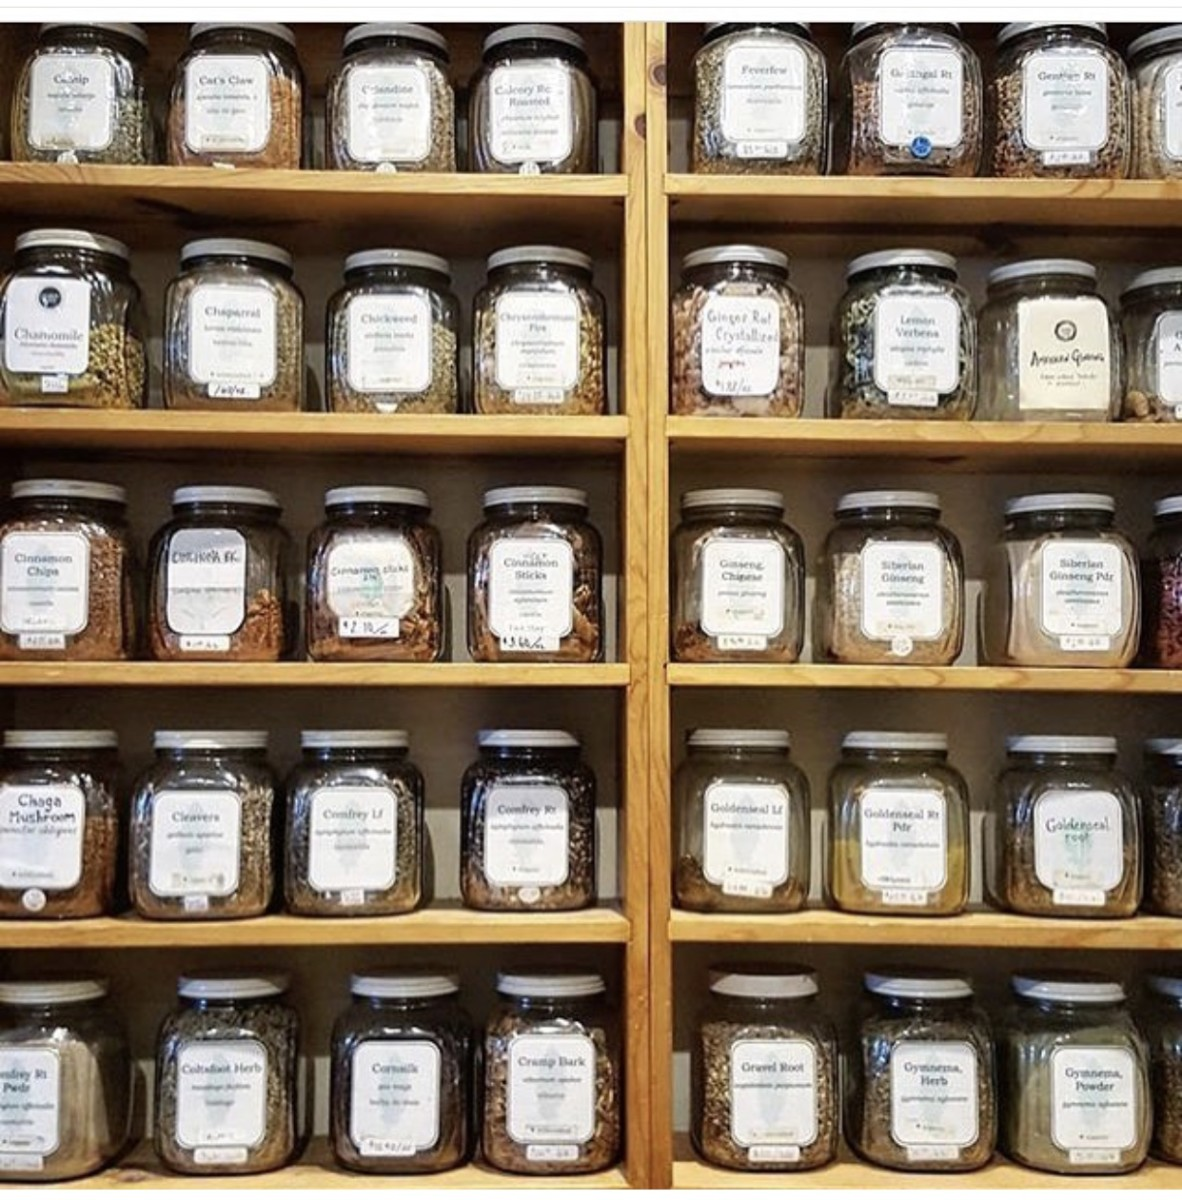 Loose leaf tea selection, image credit: Girl Go Green